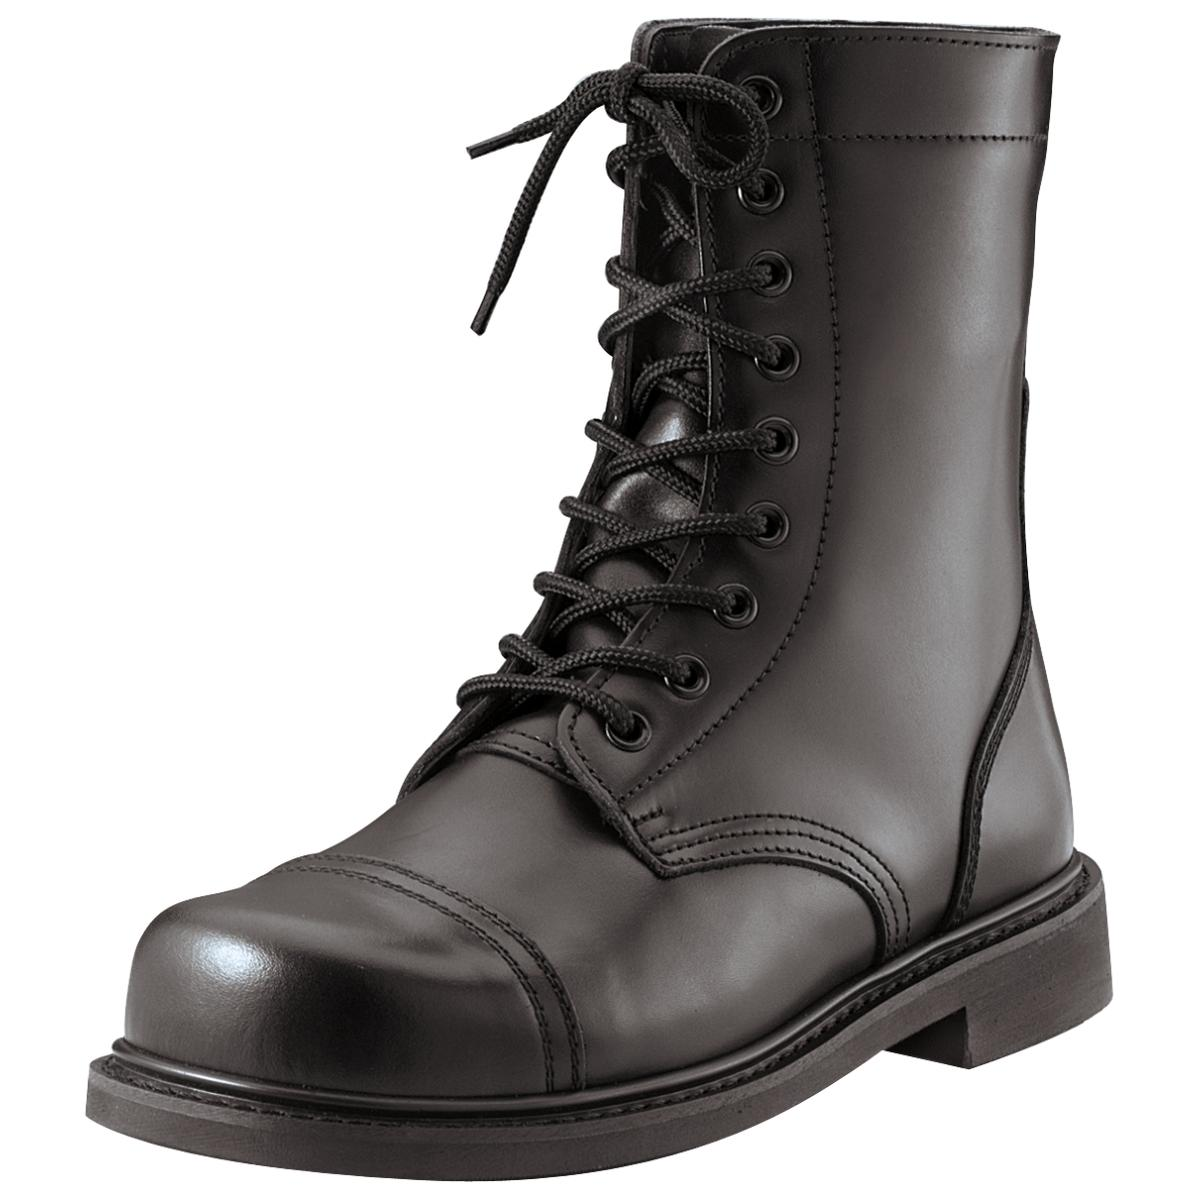 Classic Combat Jump Style Stiefel with All-Leather Upper